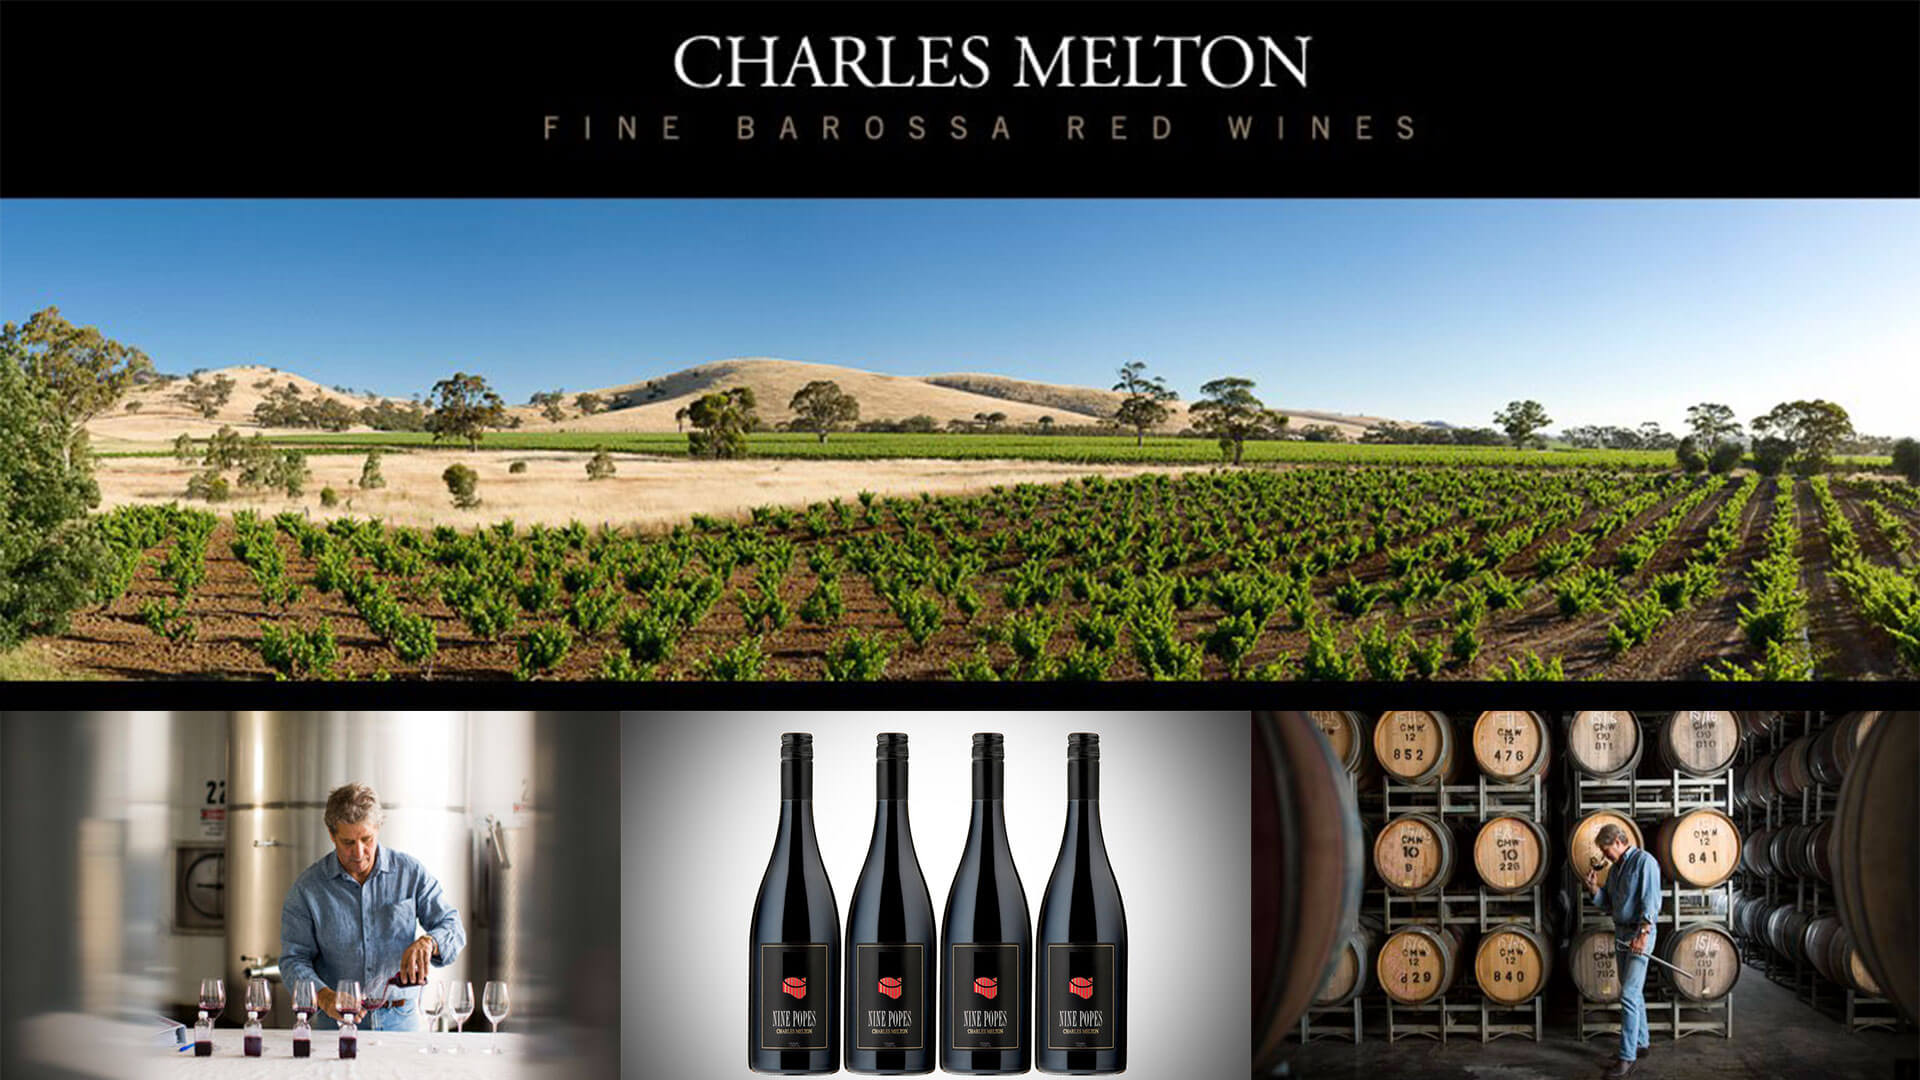 Iconic Winemaker Dinner - Charles Melton of the Barossa Valley